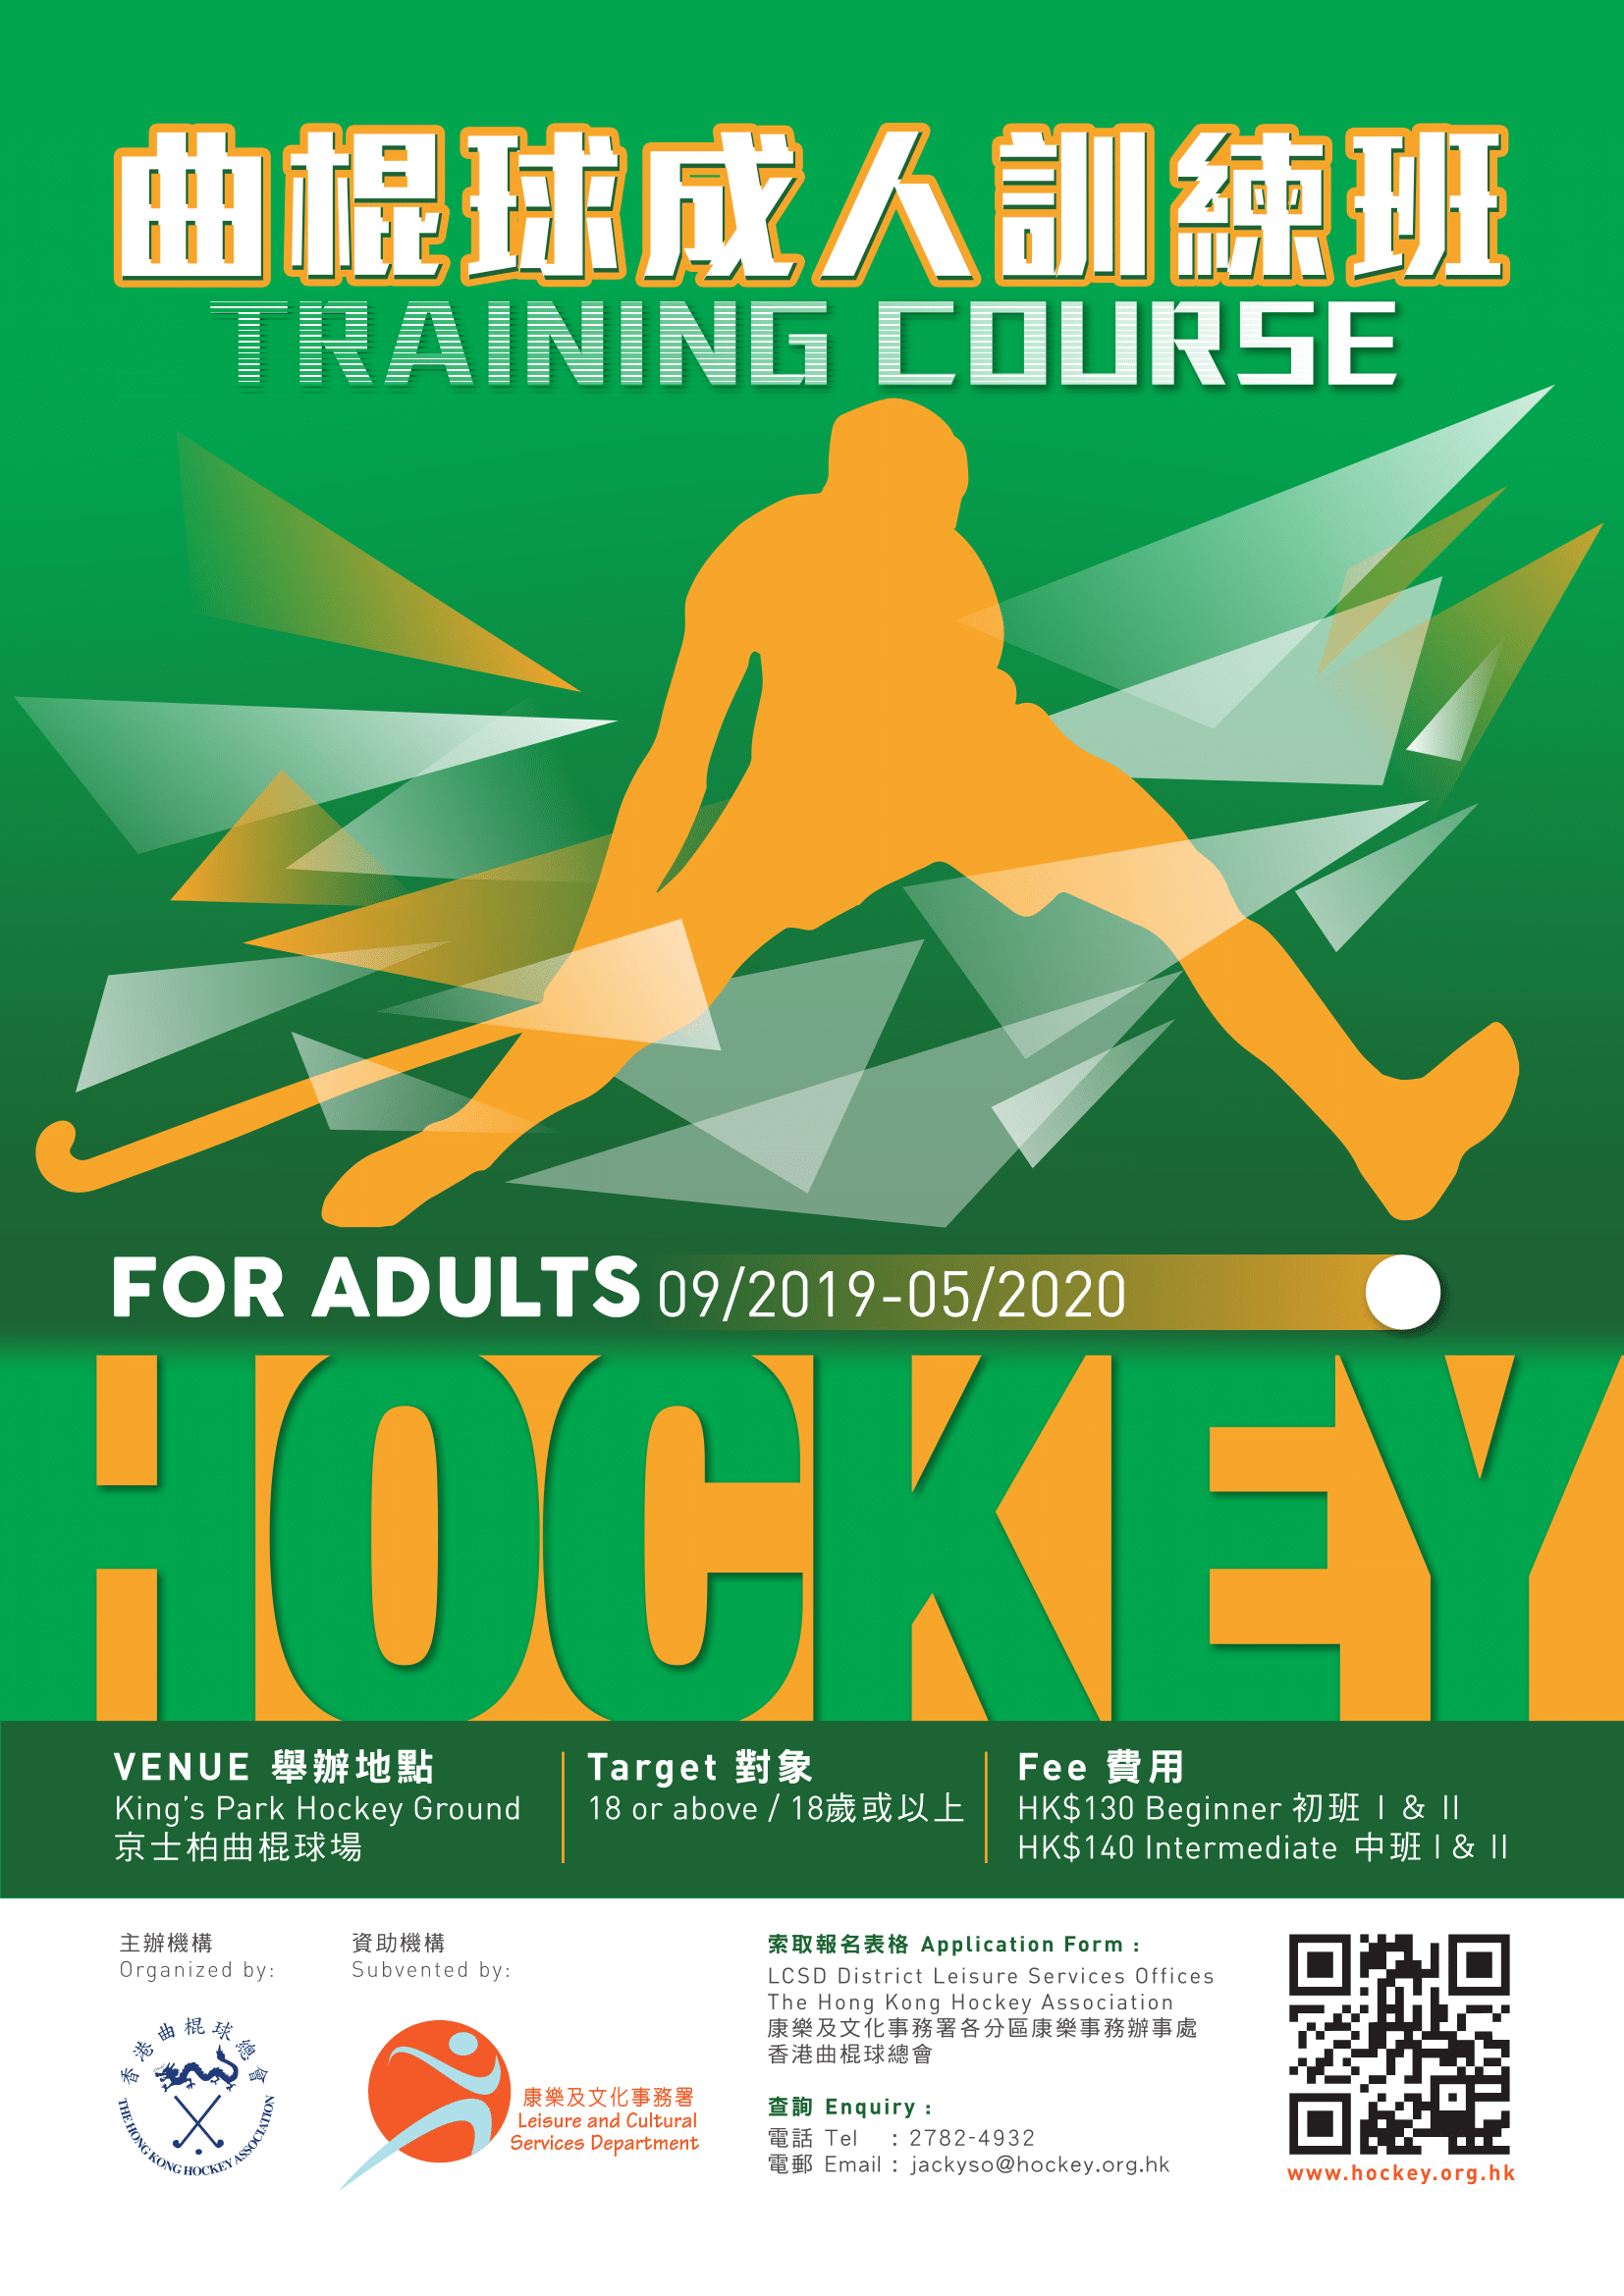 Hong Kong Hockey Association